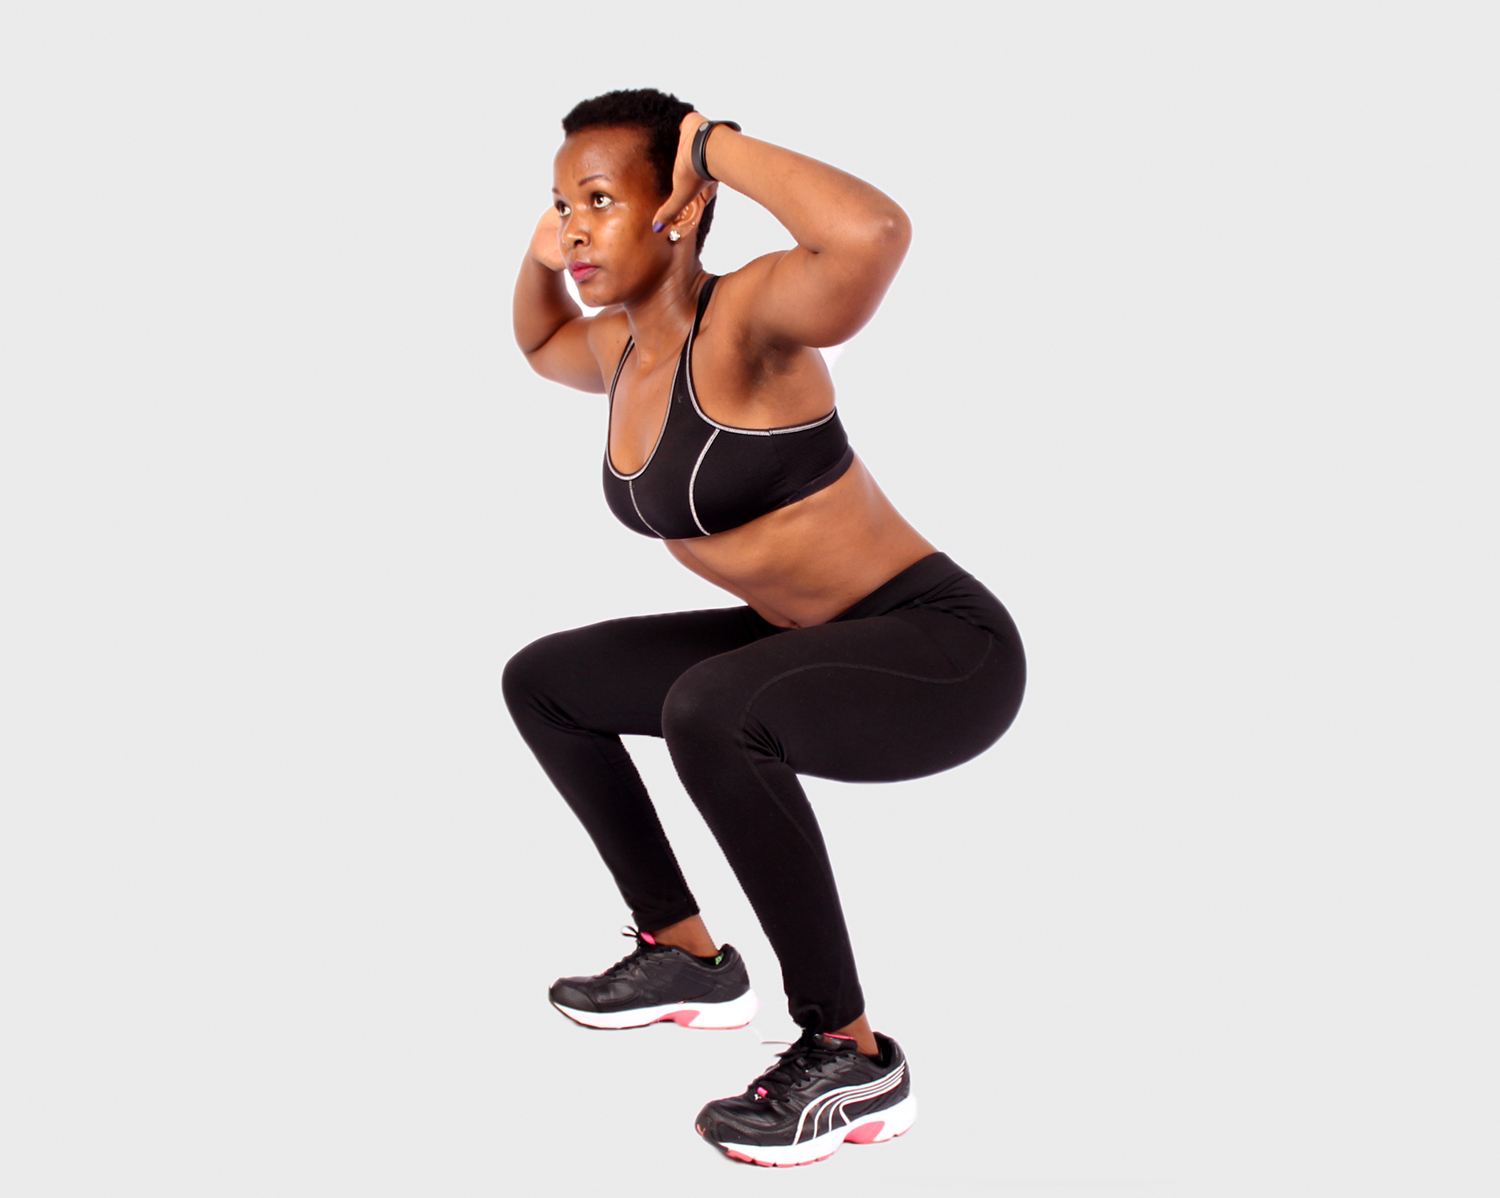 Fitness woman doing air squats